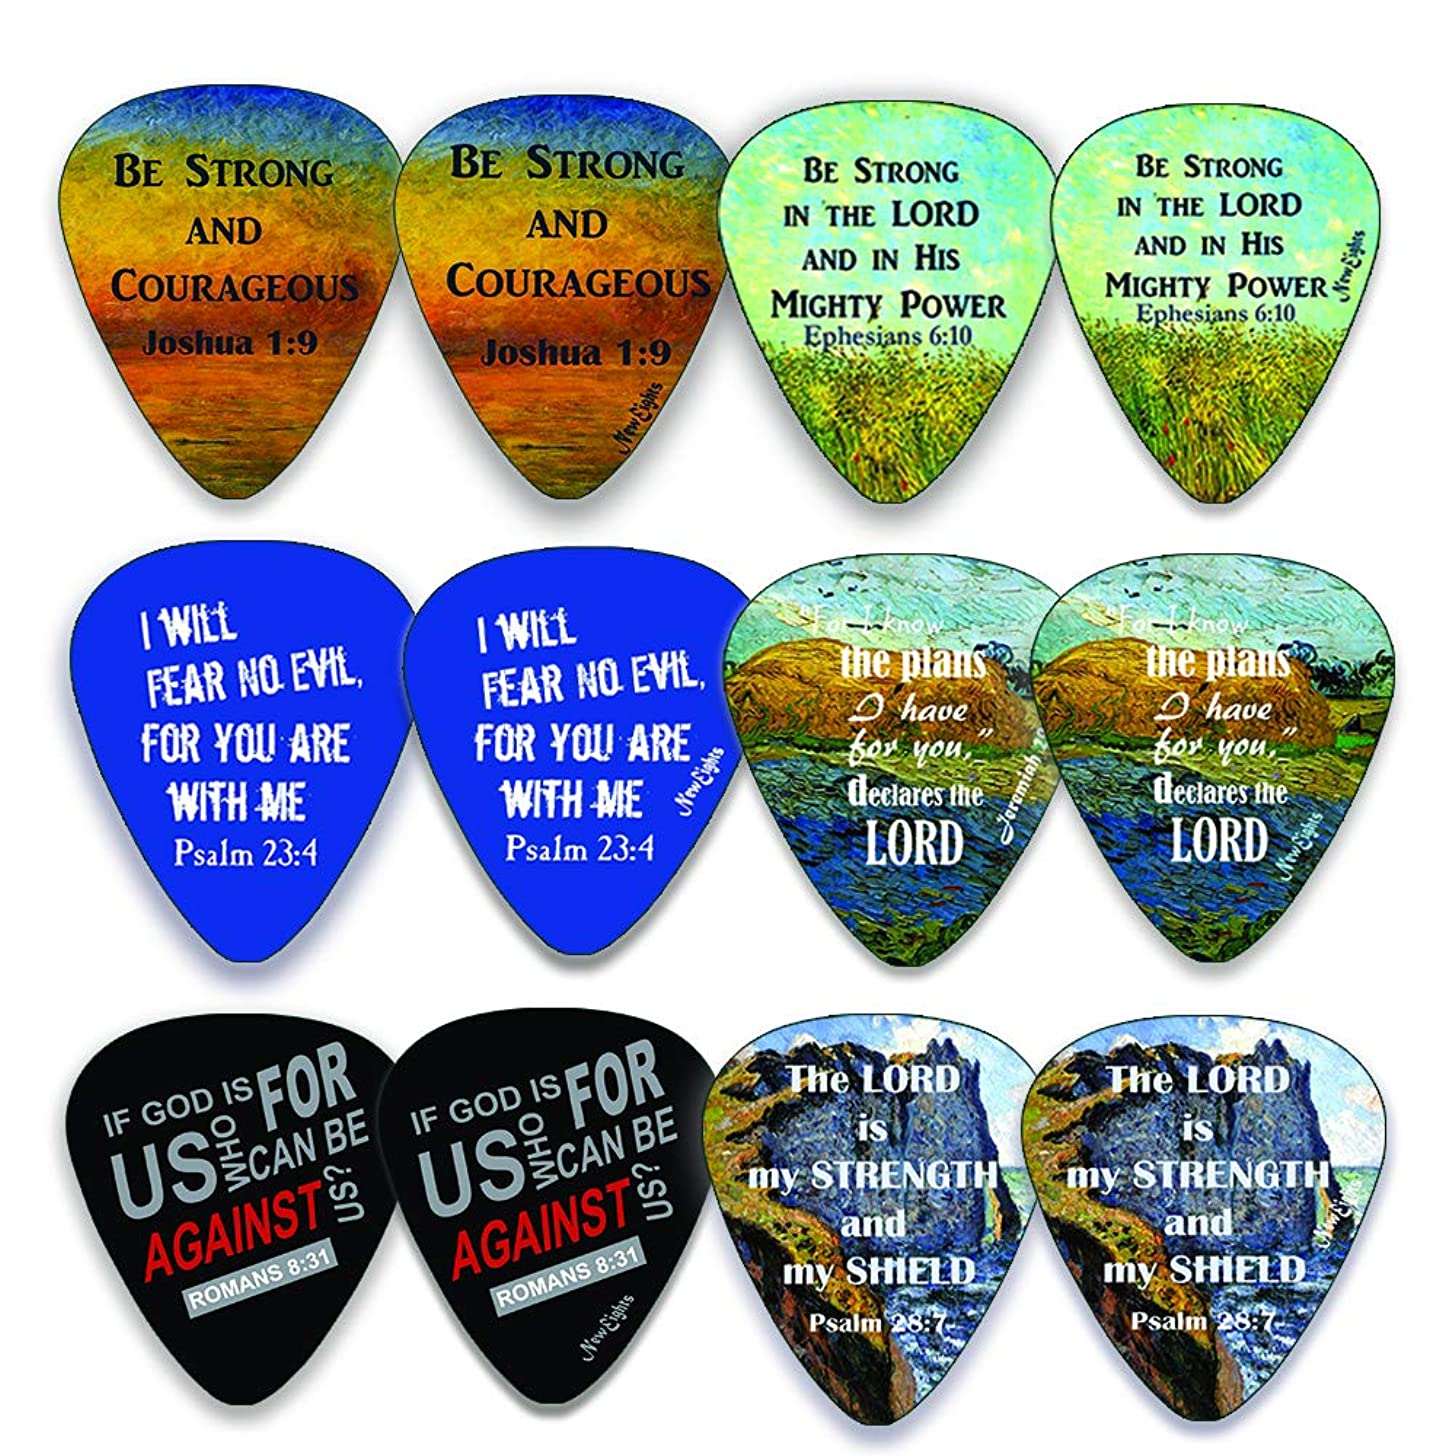 Christian Guitar Picks (12 pack)- Be Strong - Jeremiah 29:11 - Celluloid Medium - Best Stocking Stuffers for Dad Men Thanksgiving Christmas Birthday - Worship The Lord Excitedly